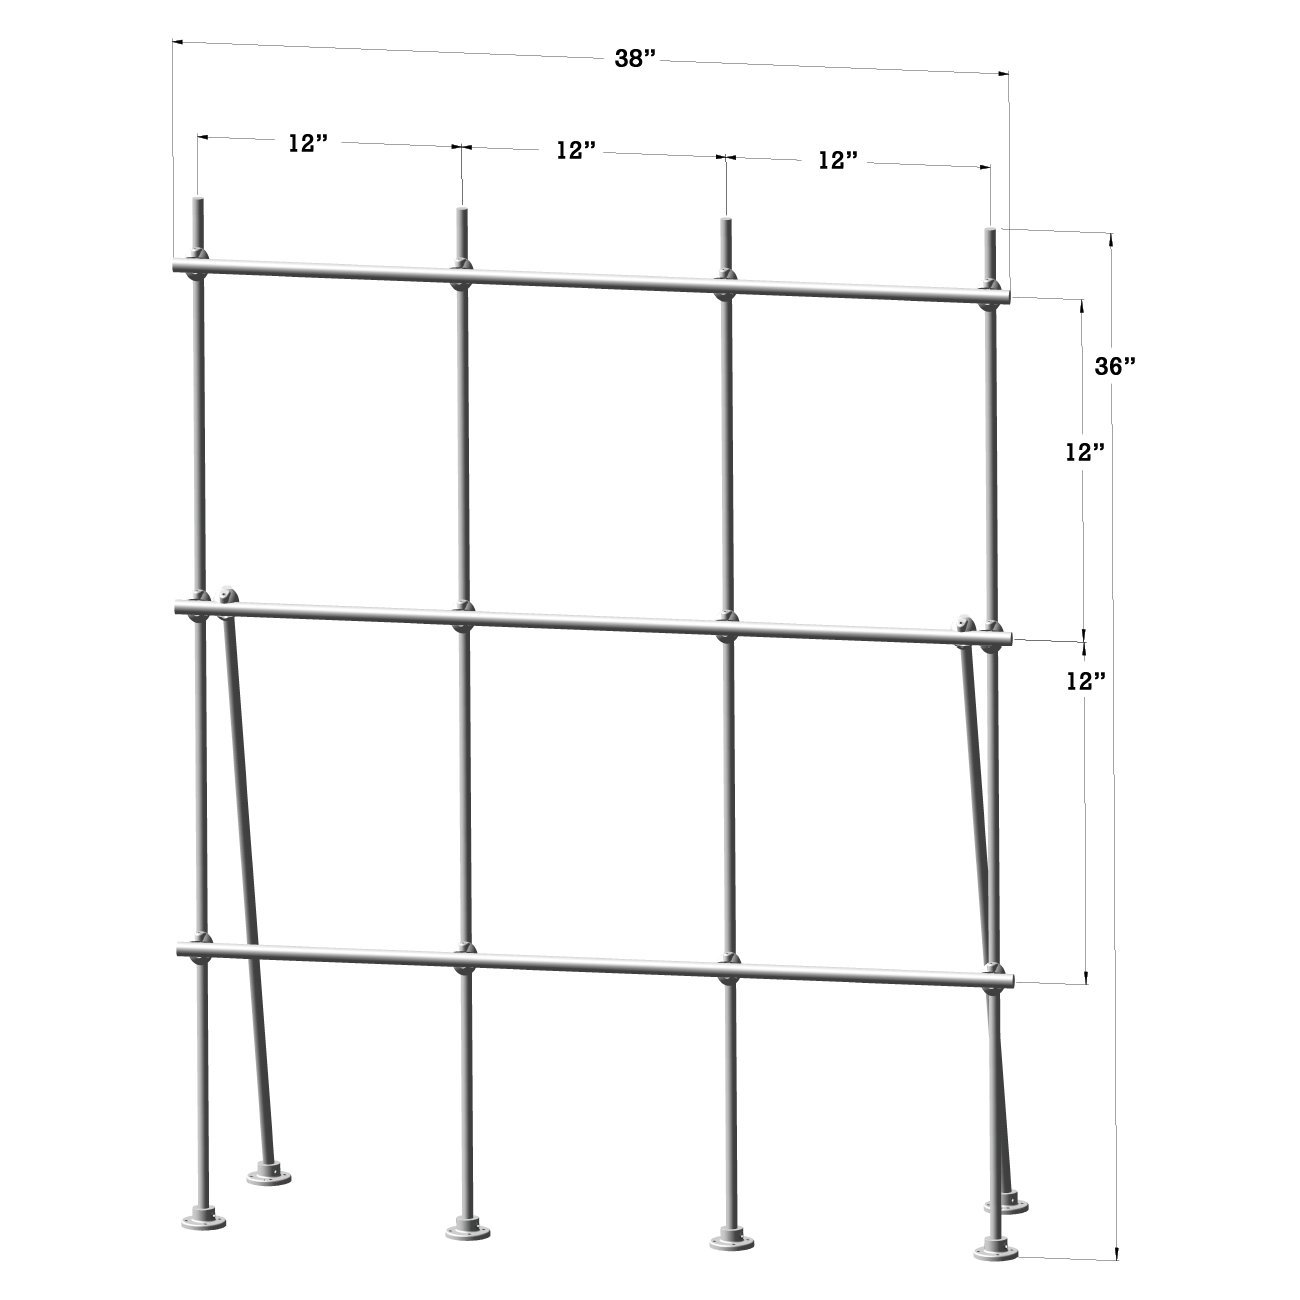 Lee Engineering 4 foot Aluminum Table Top Mount Lab-Frame Kit for Fume Hoods